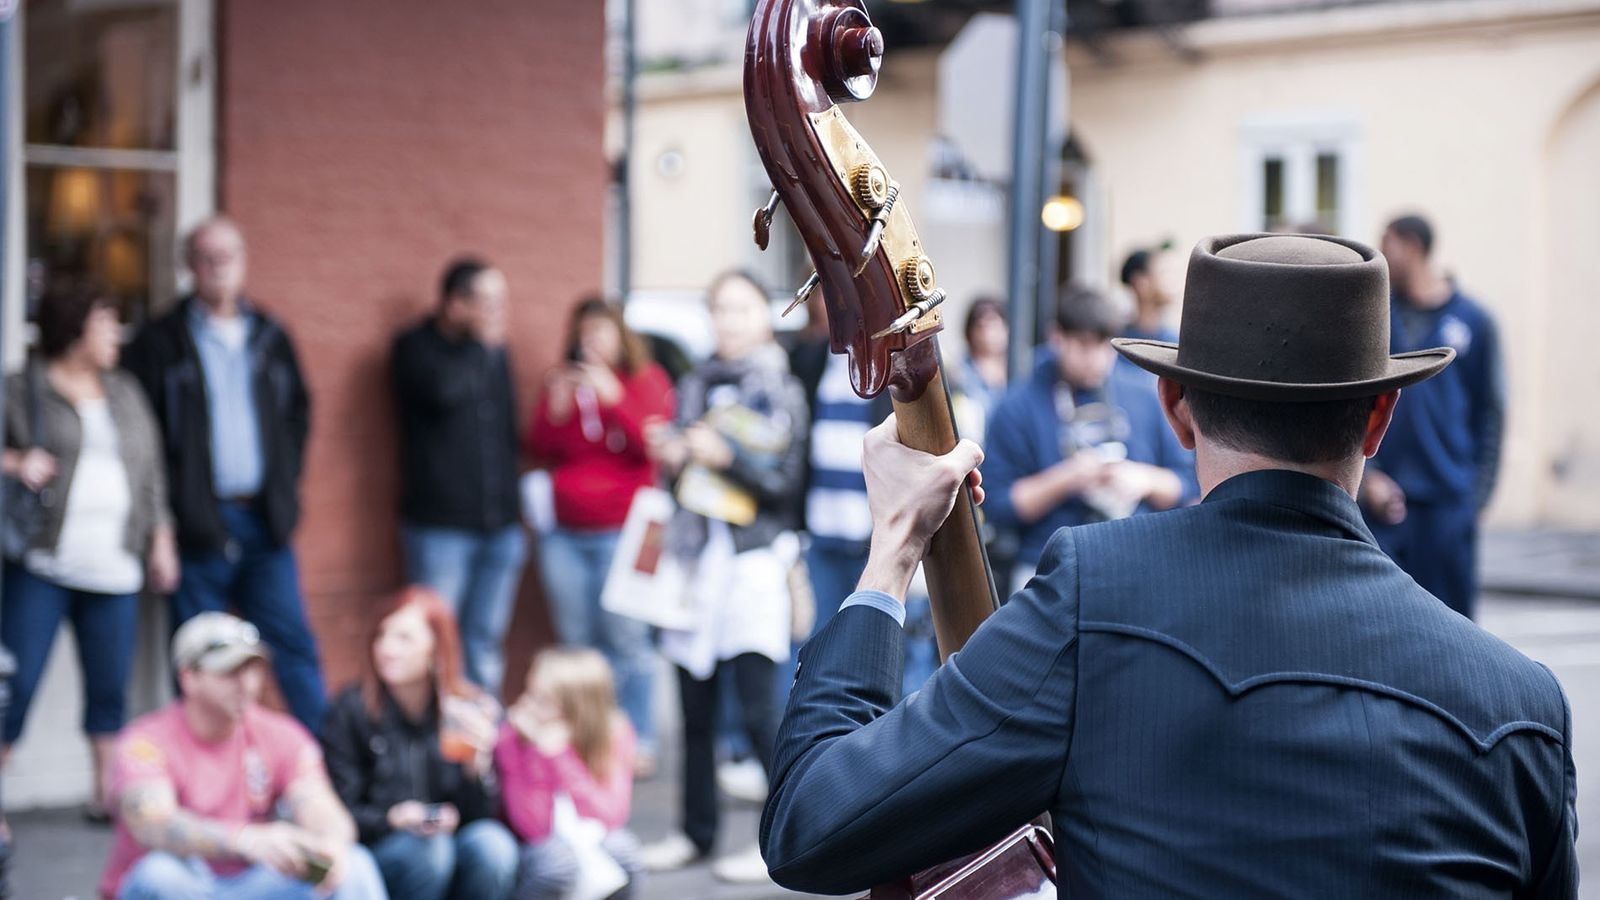 A young man plays double bass on Royal Street, New Orleans